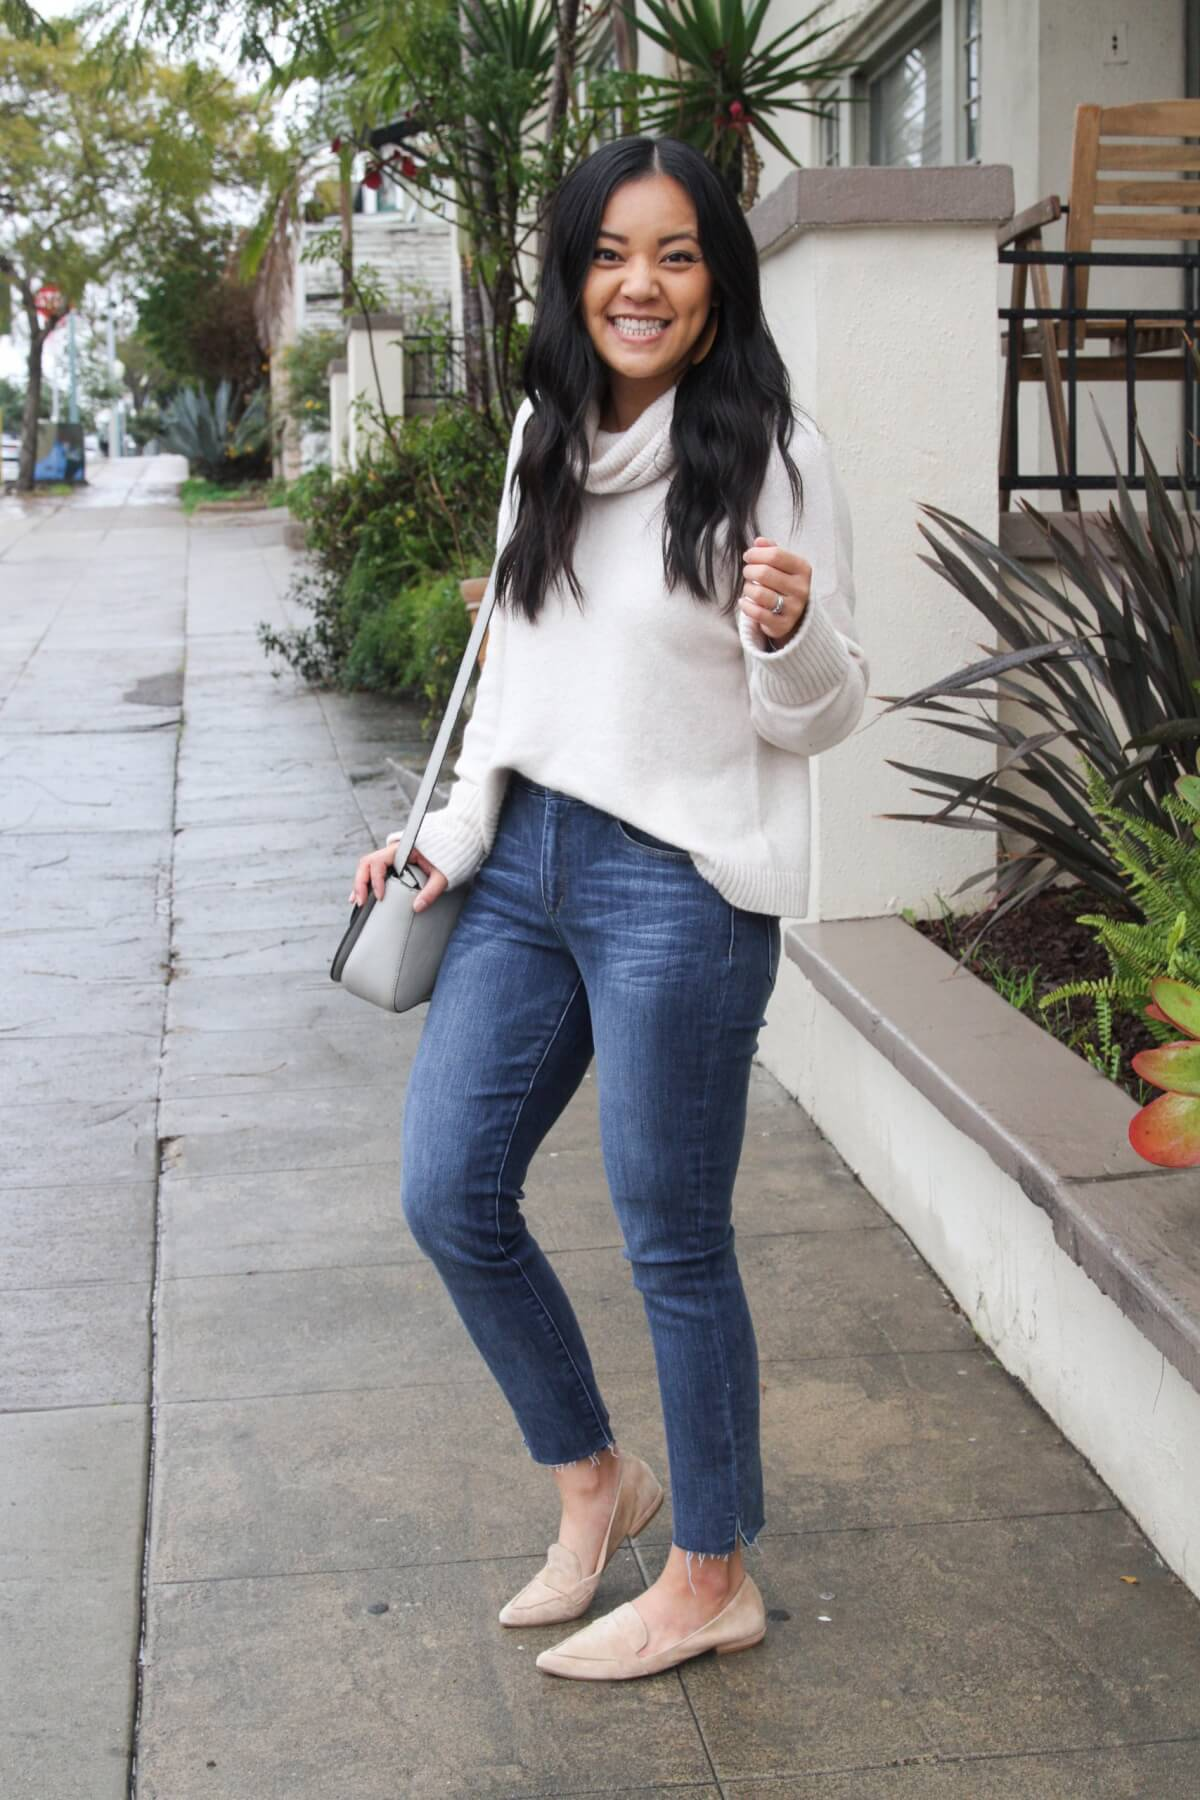 spring outfit: white turtleneck sweater + straight leg jeans + neutral flats + gray purse